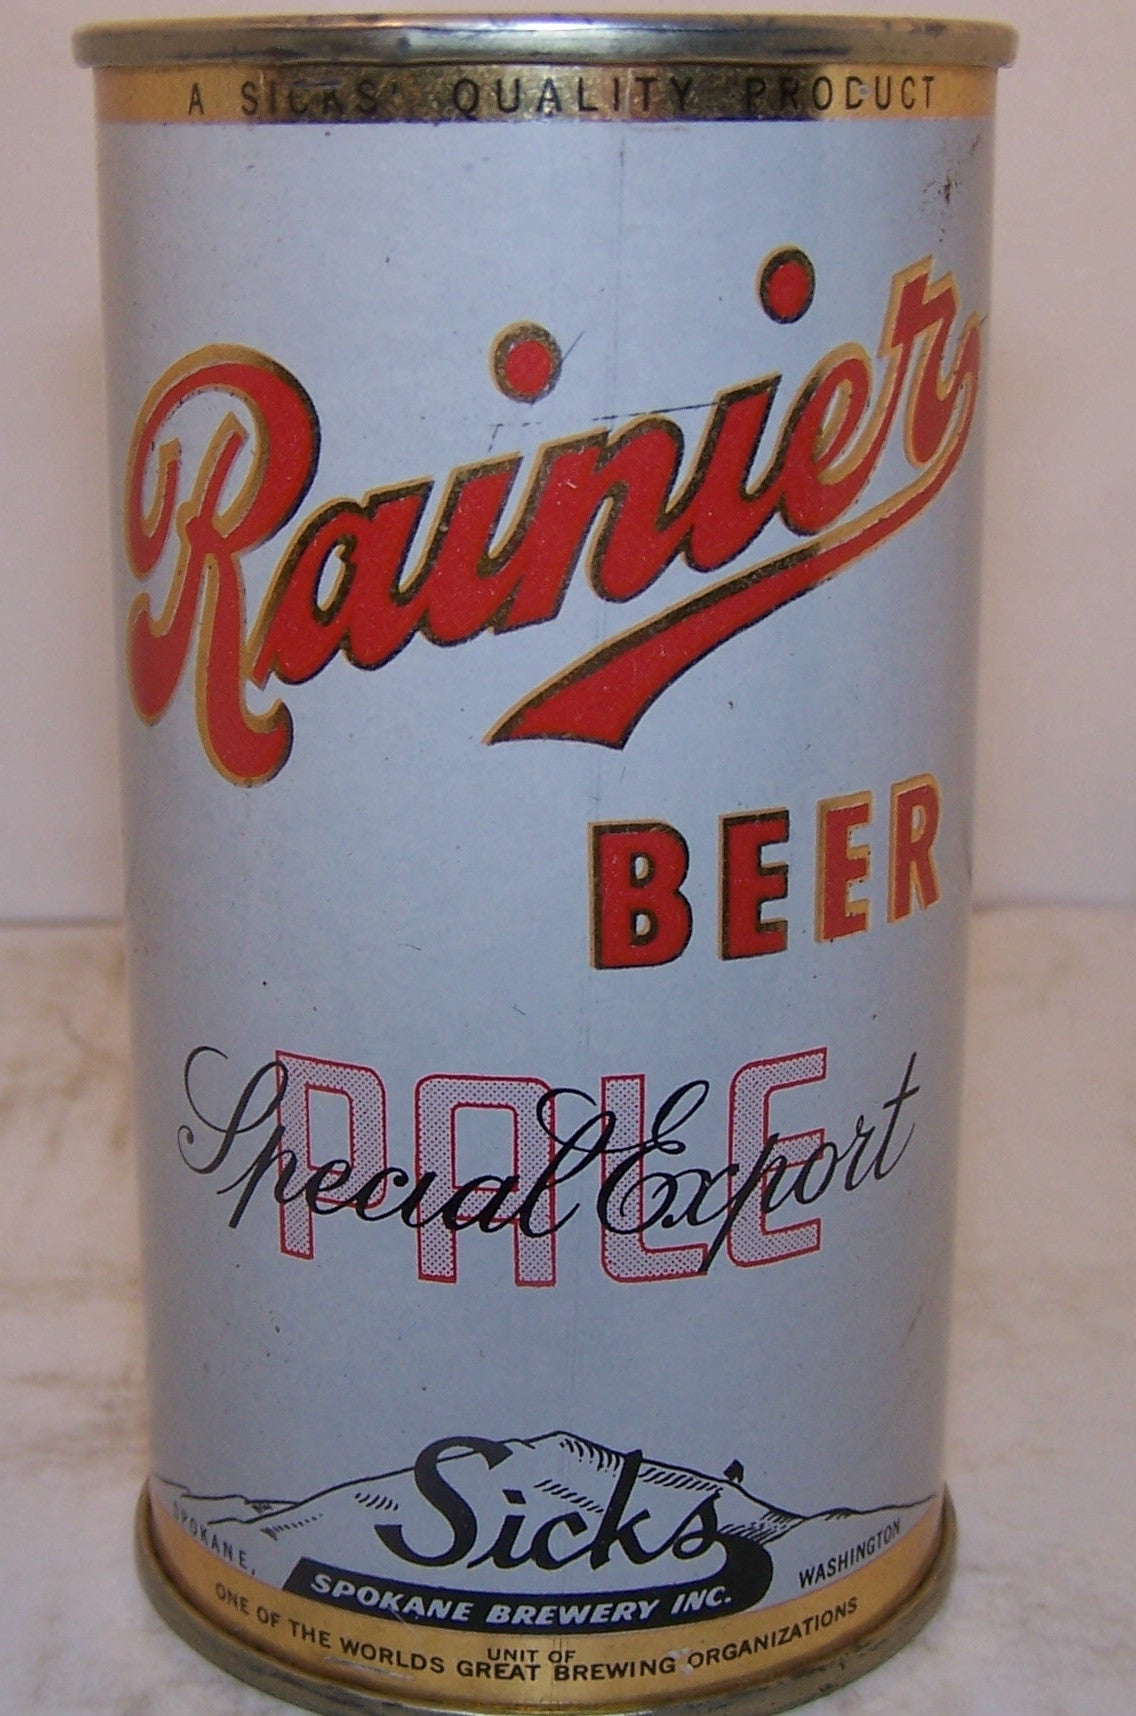 Rainier Special Export Pale Beer, Lilek page # 705, Grade 1 Sold 4/20/15